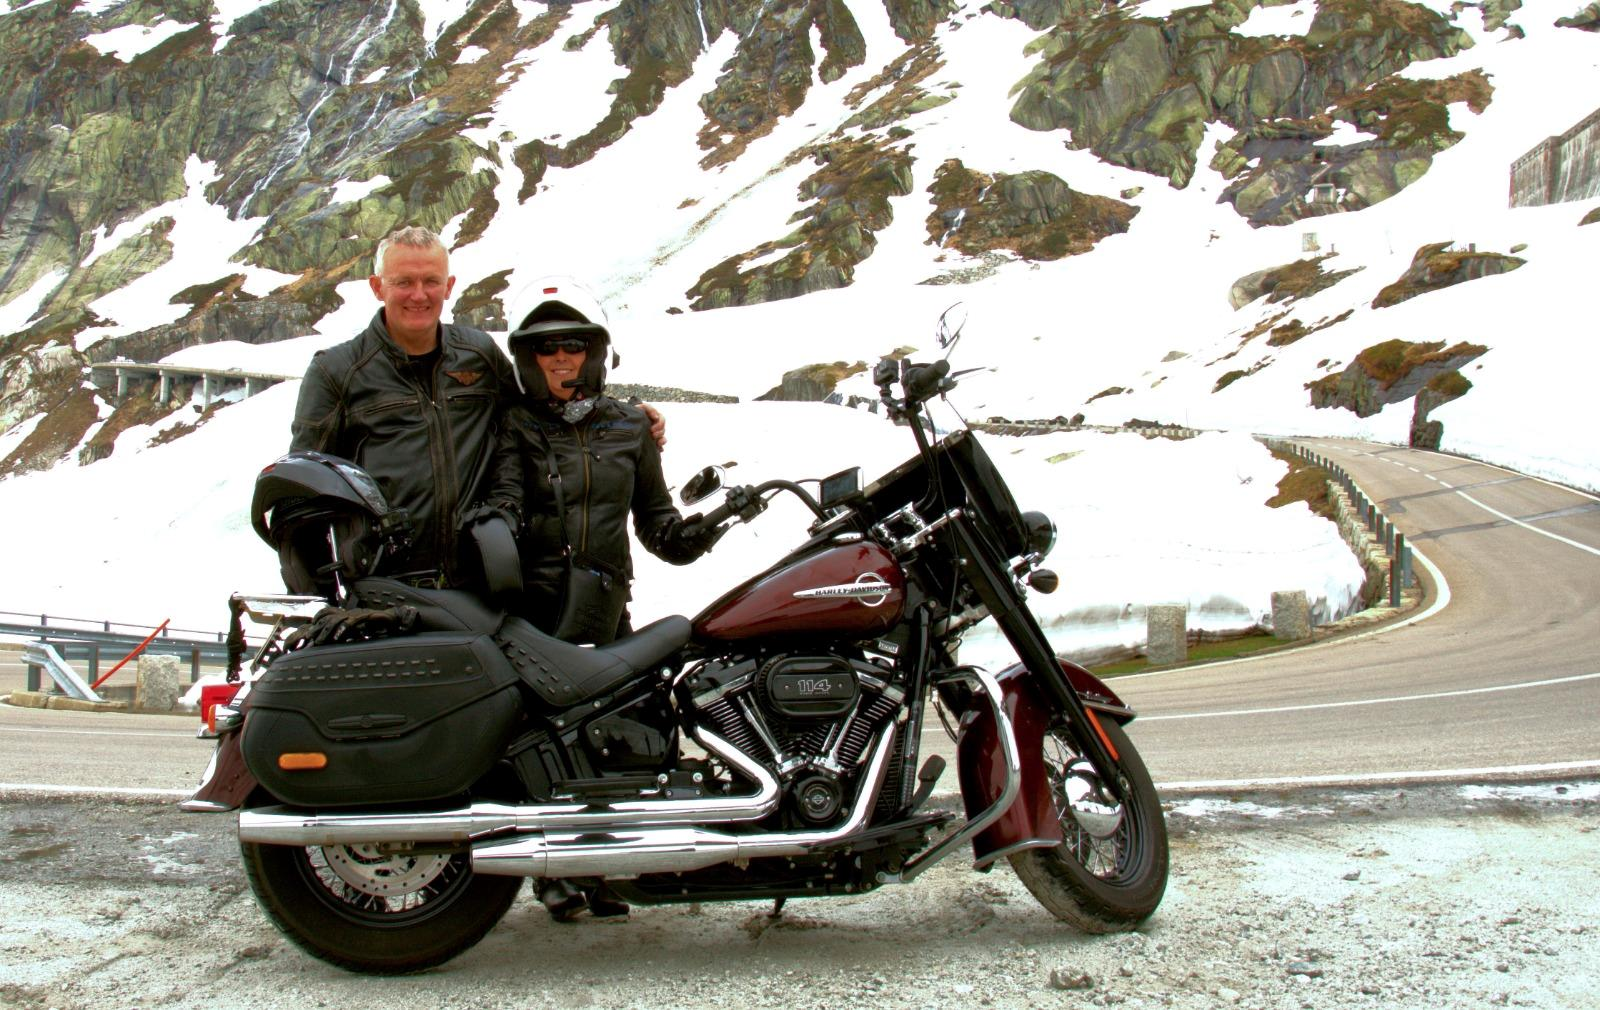 Touring on a Harley-Davidson